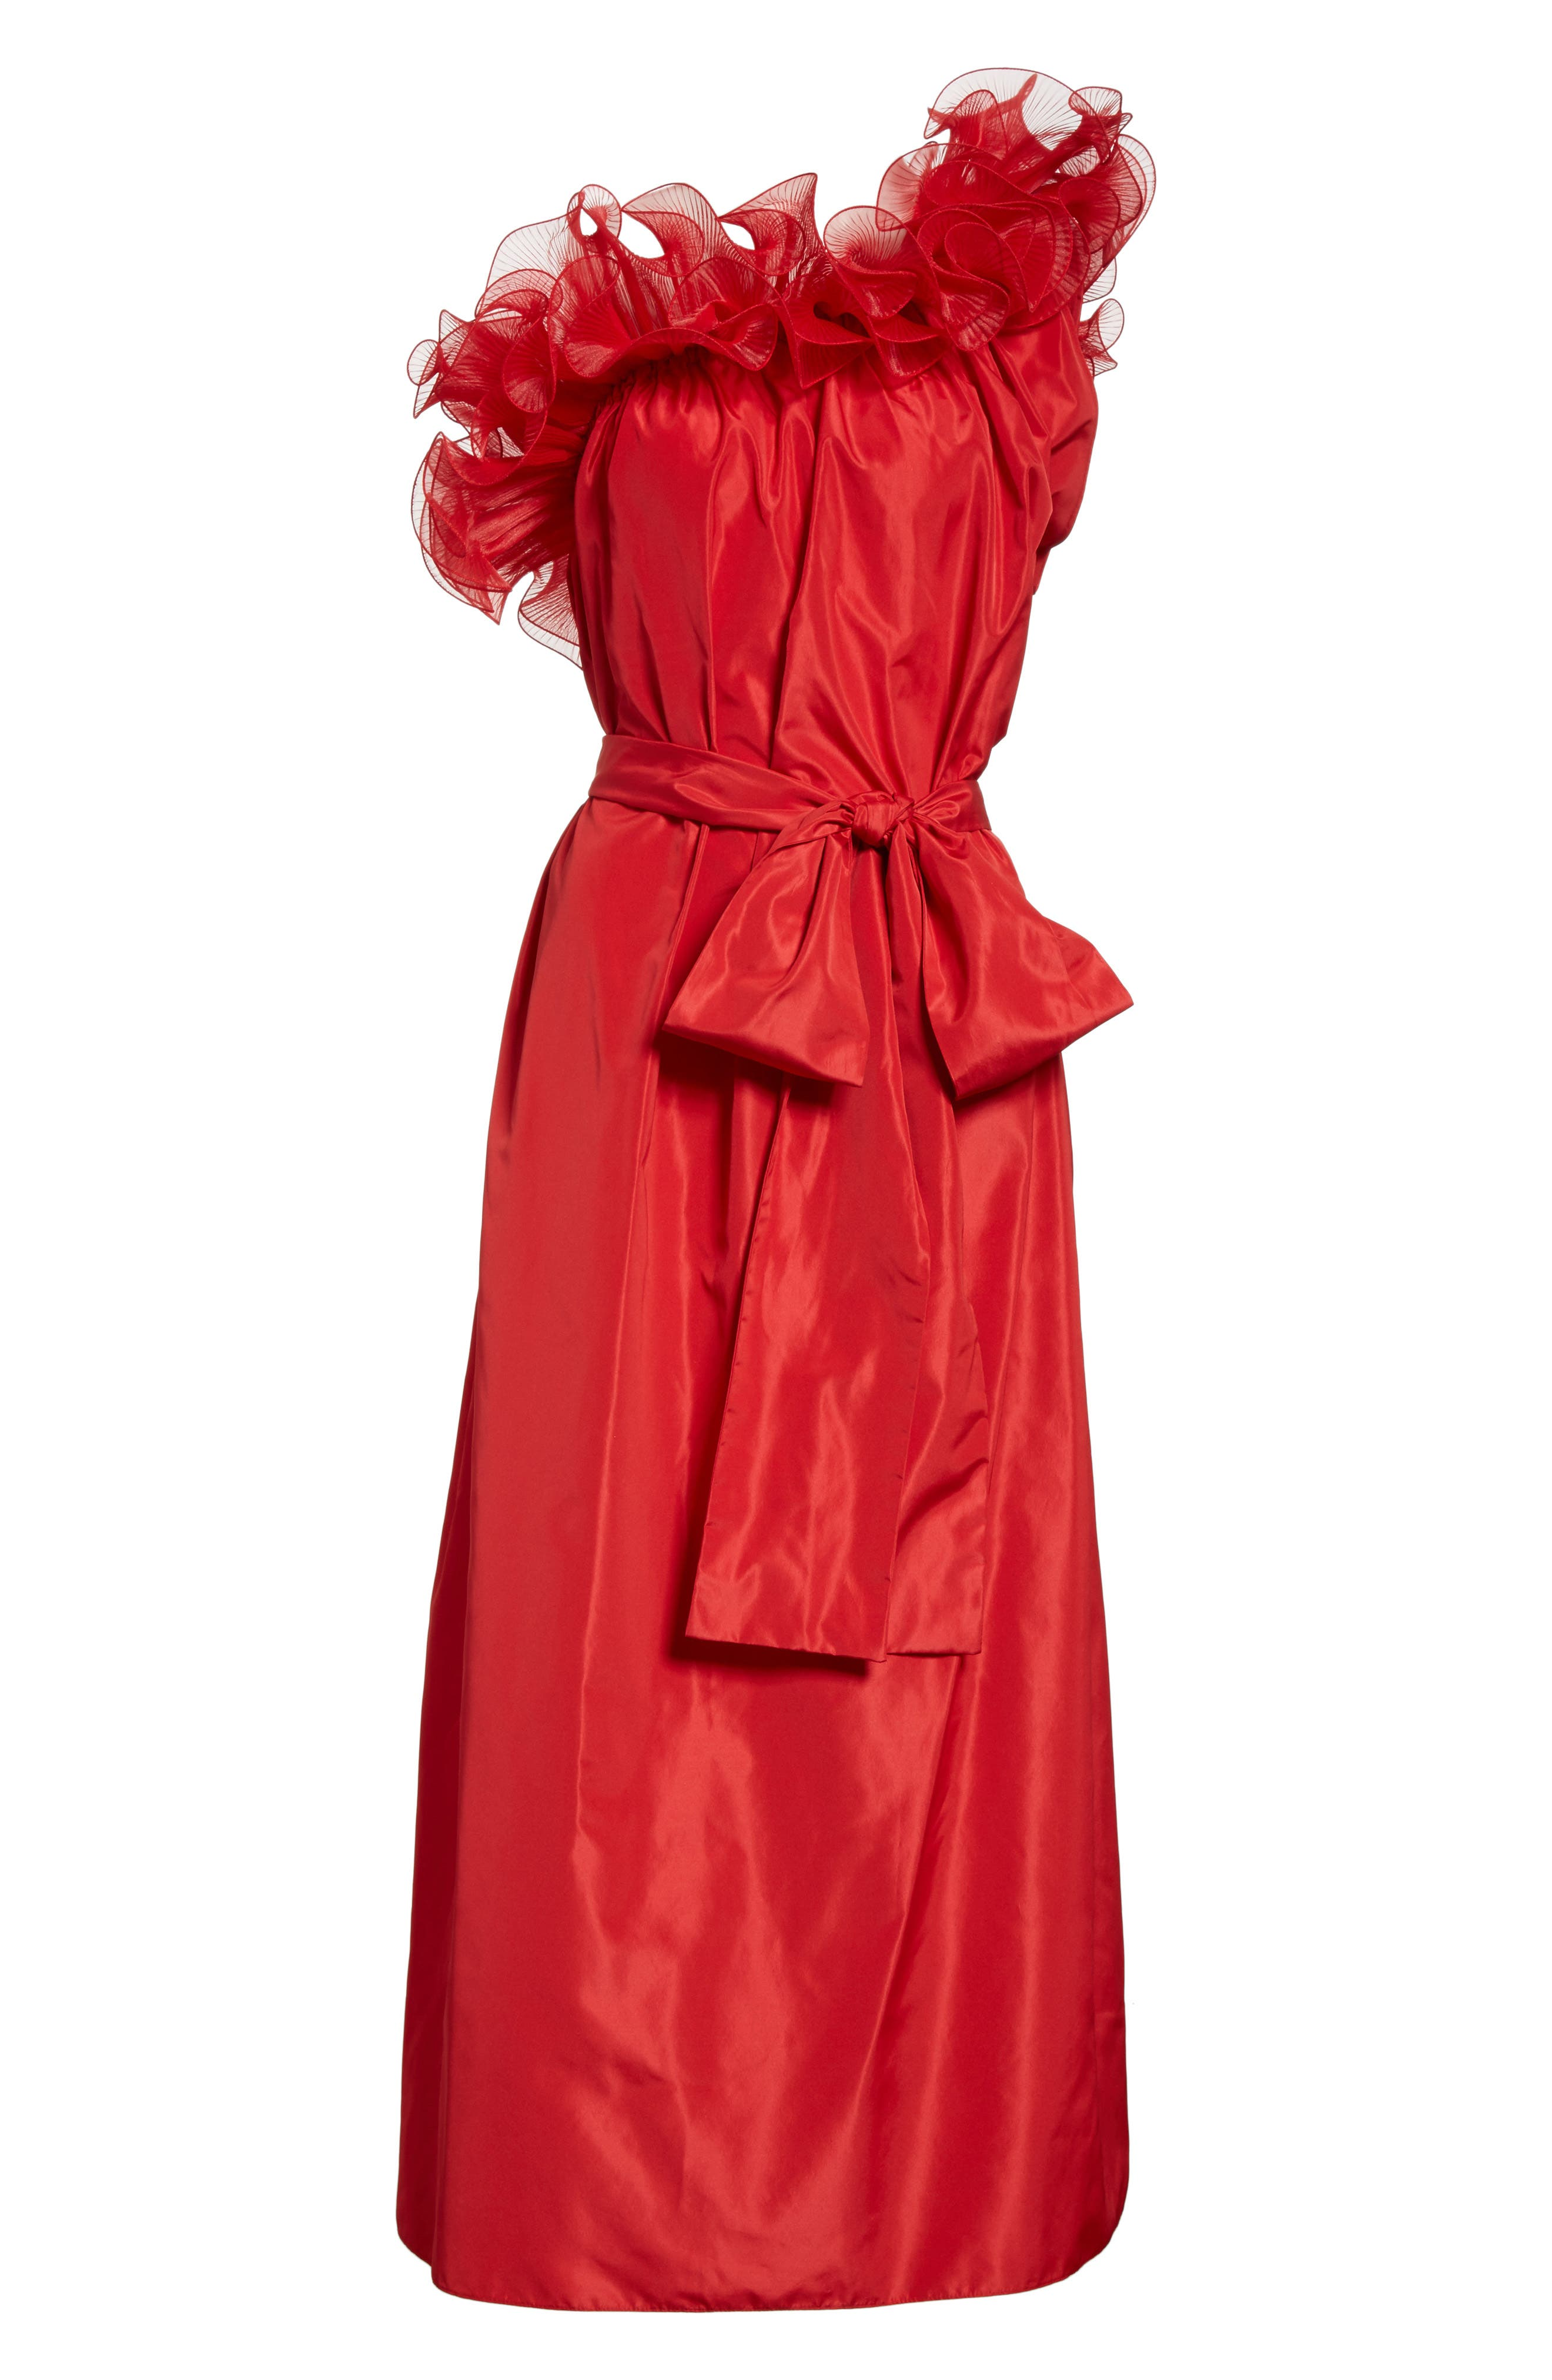 One-Shoulder Ruffle Taffeta Dress,                             Alternate thumbnail 7, color,                             Red